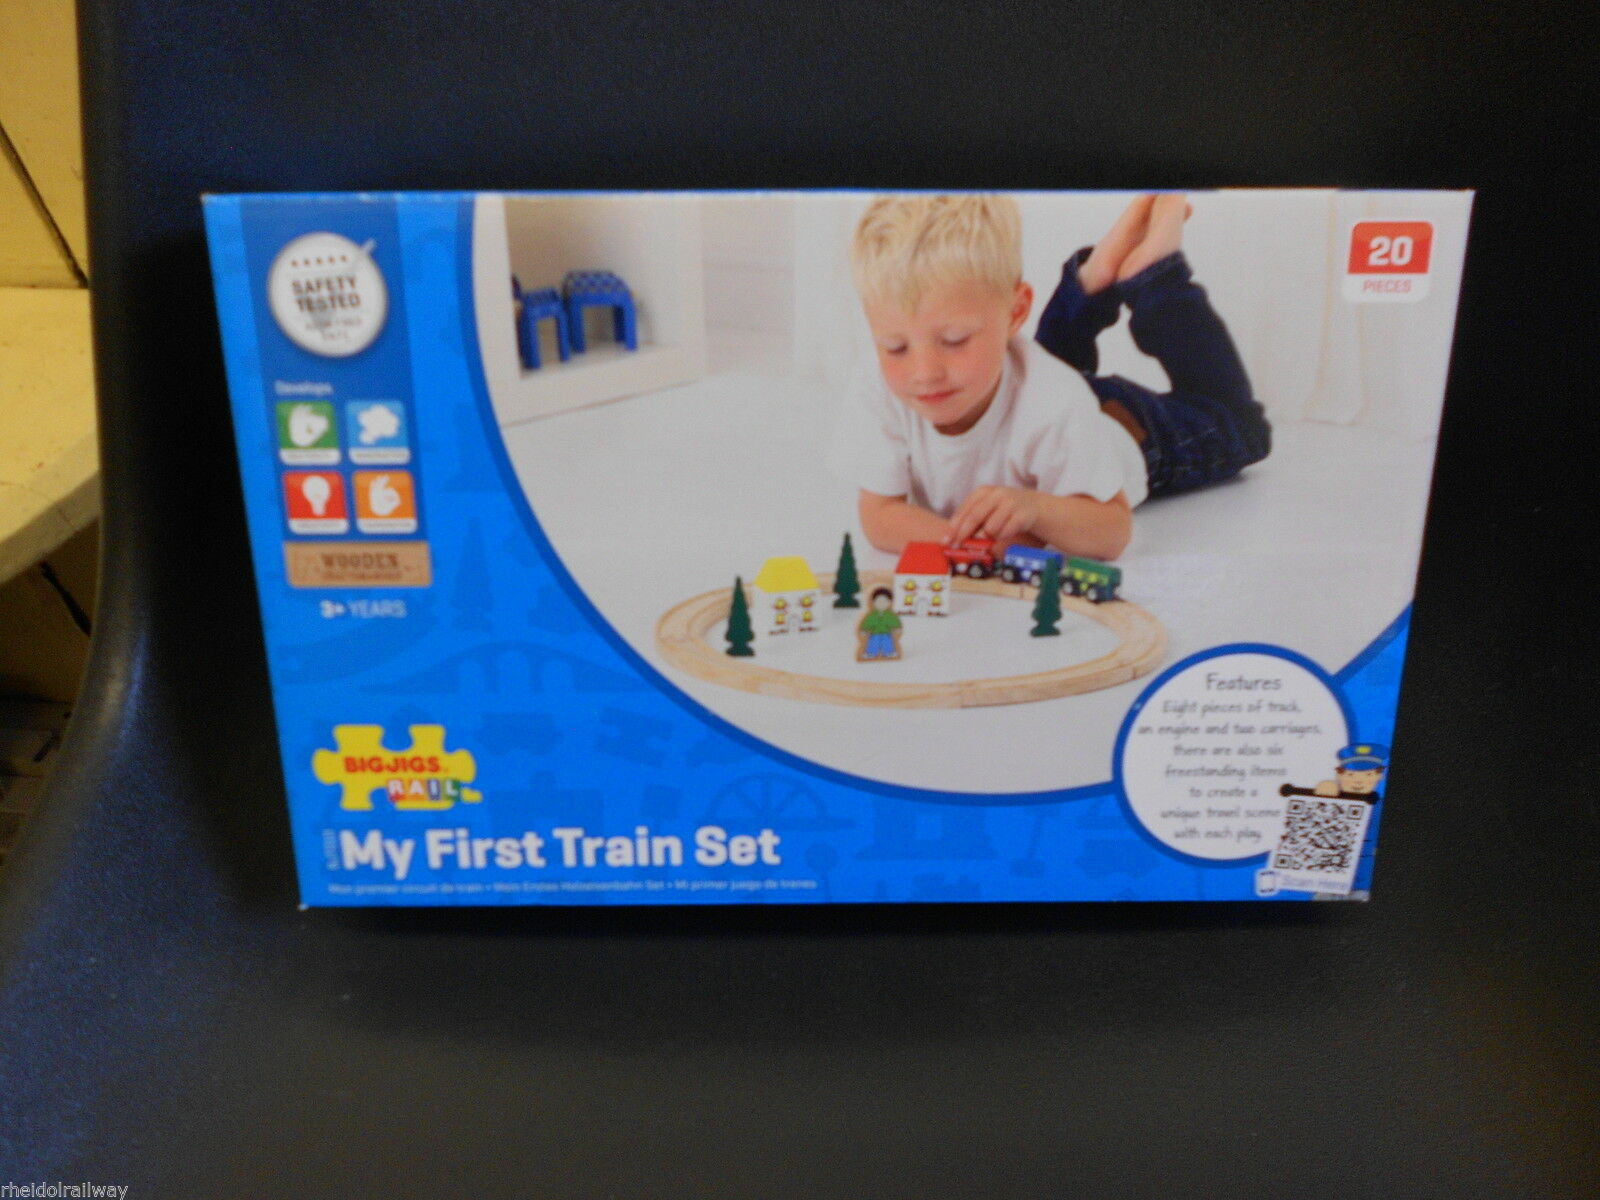 Wooden train BIGJIGS My First Train Set fits Brio